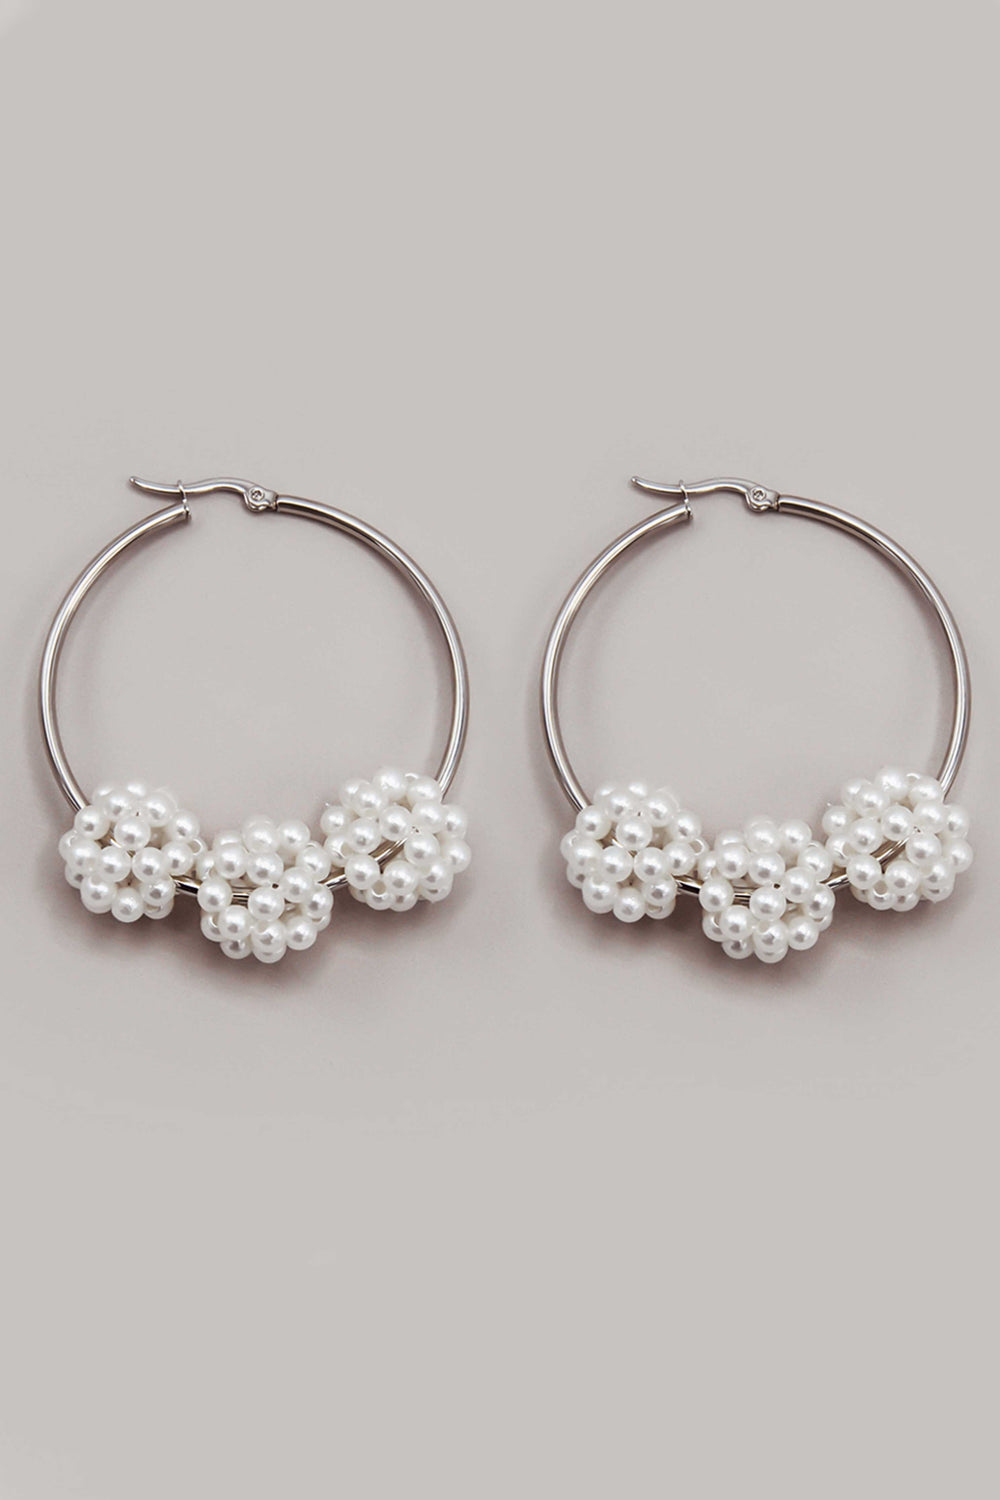 DAY DREAMING EARRINGS IN SILVER | Women's Online Shopping | CHICLEFRIQUE